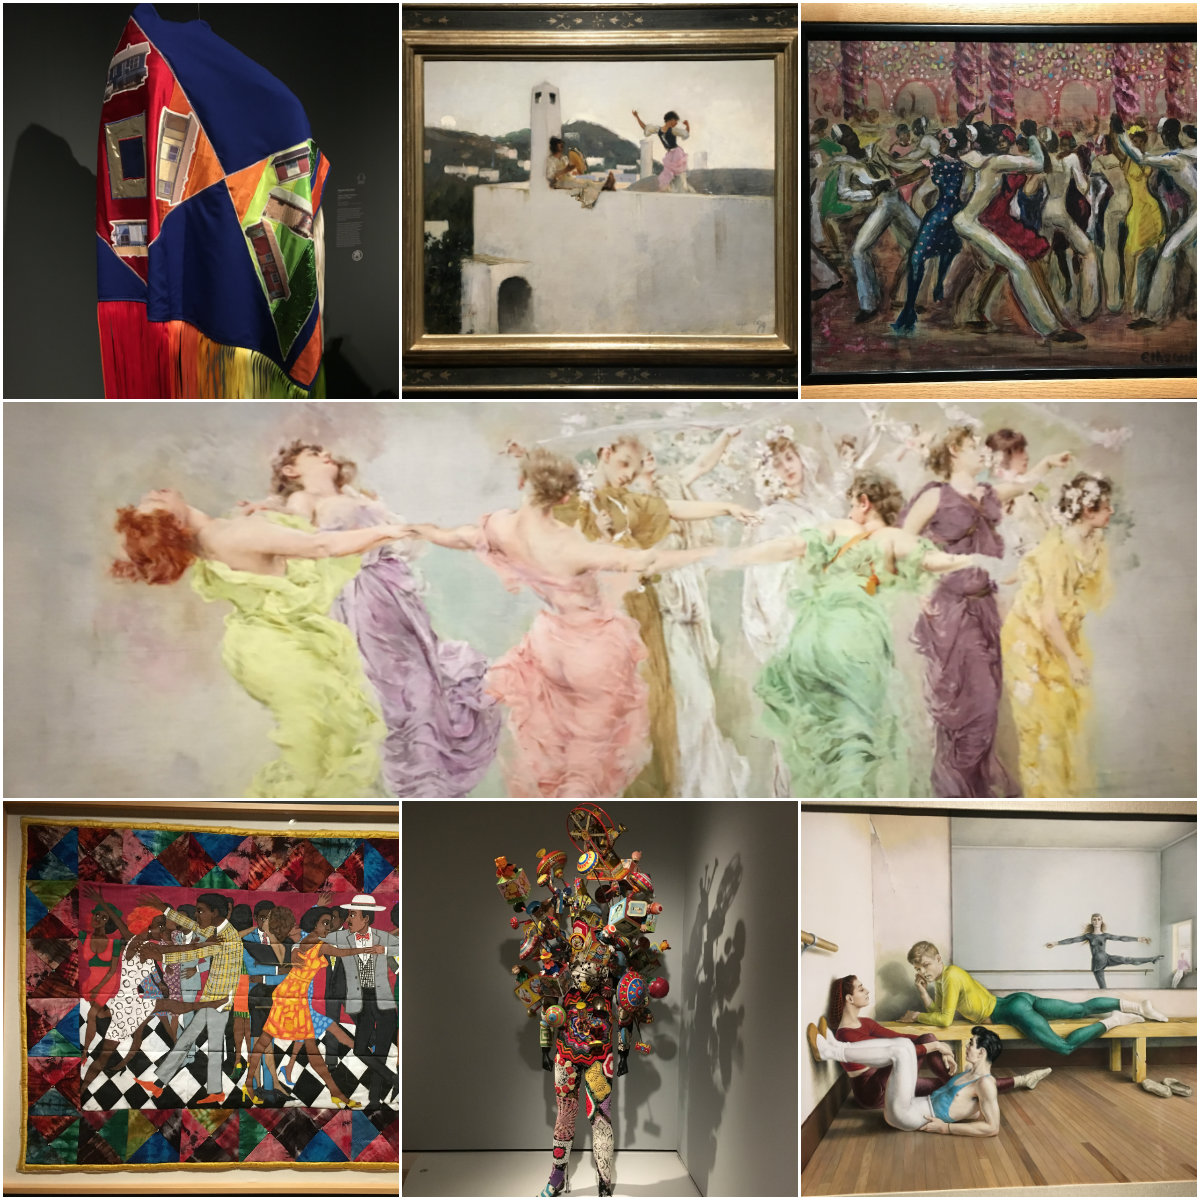 Art featured in the traveling exhibit Art of the American Dance at Crystal Bridges